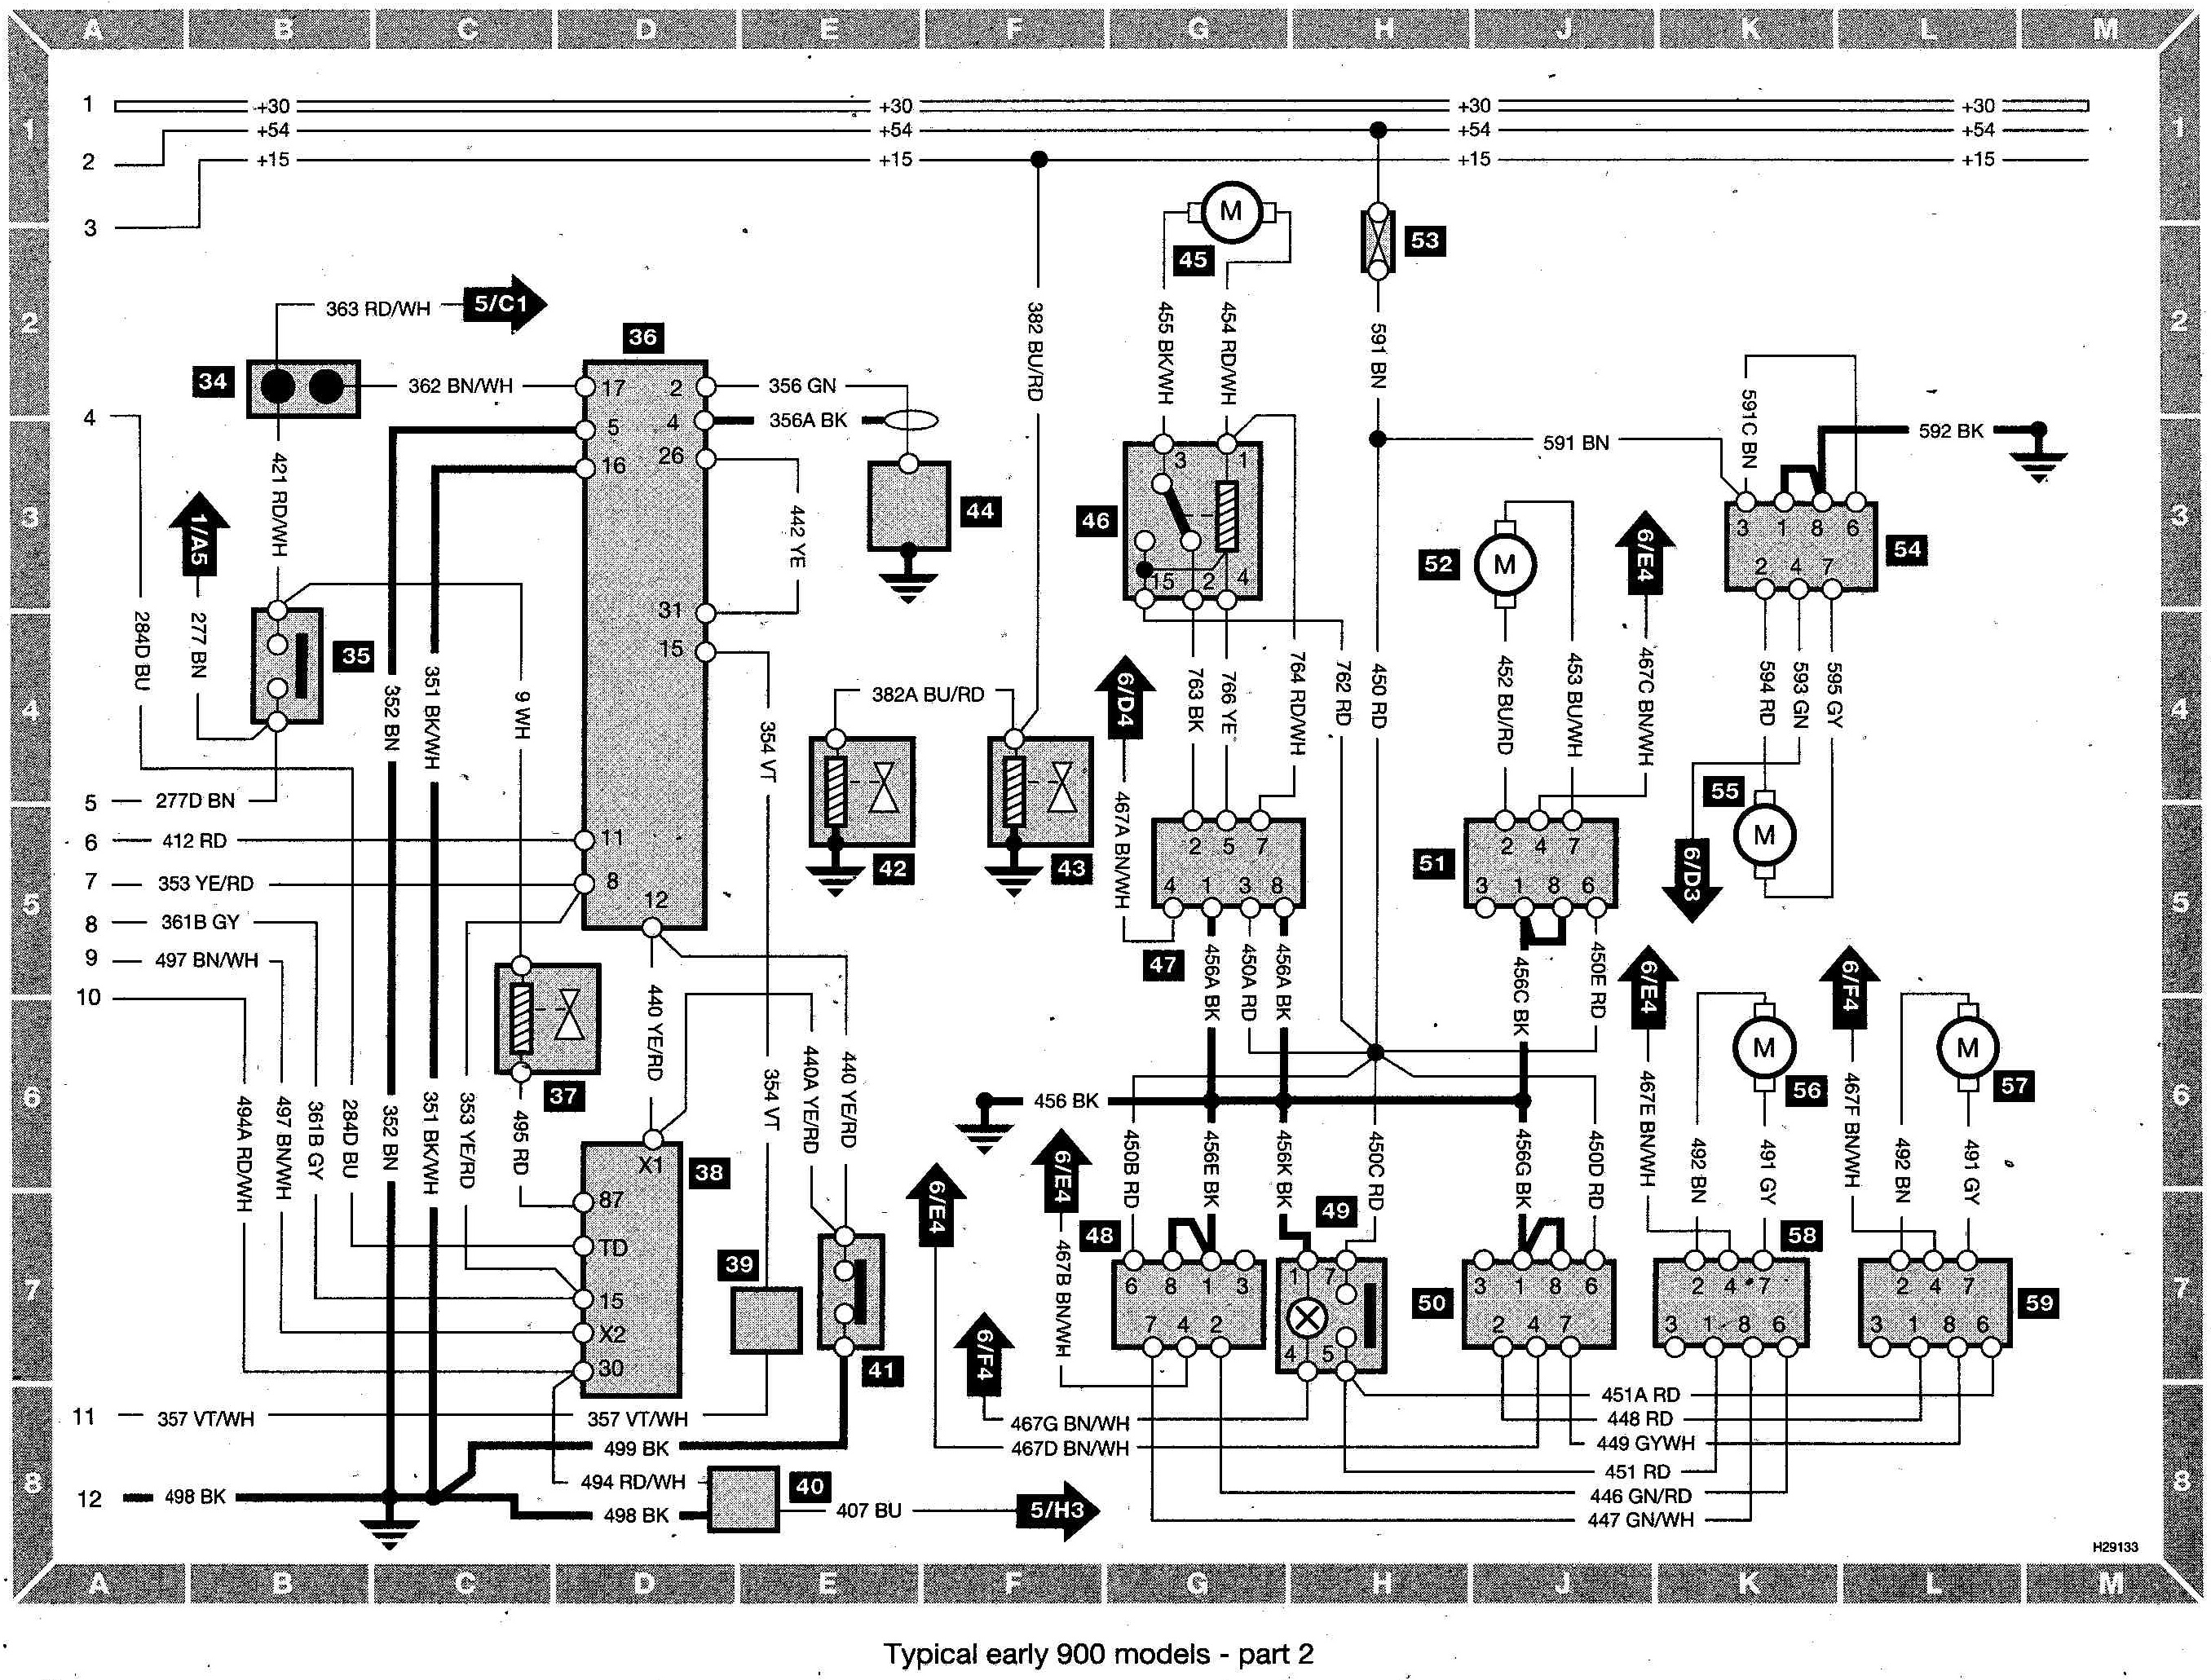 1992 Citroen Bx Electrical Wiring Diagram moreover Berlingo Wiring Diagram as well Philips Car Audio Wiring Diagram likewise Heater Blower Not Working 3259059 moreover 2001 Chevy Malibu On 26 Rims Wiring Diagrams. on citroen radio wiring diagram